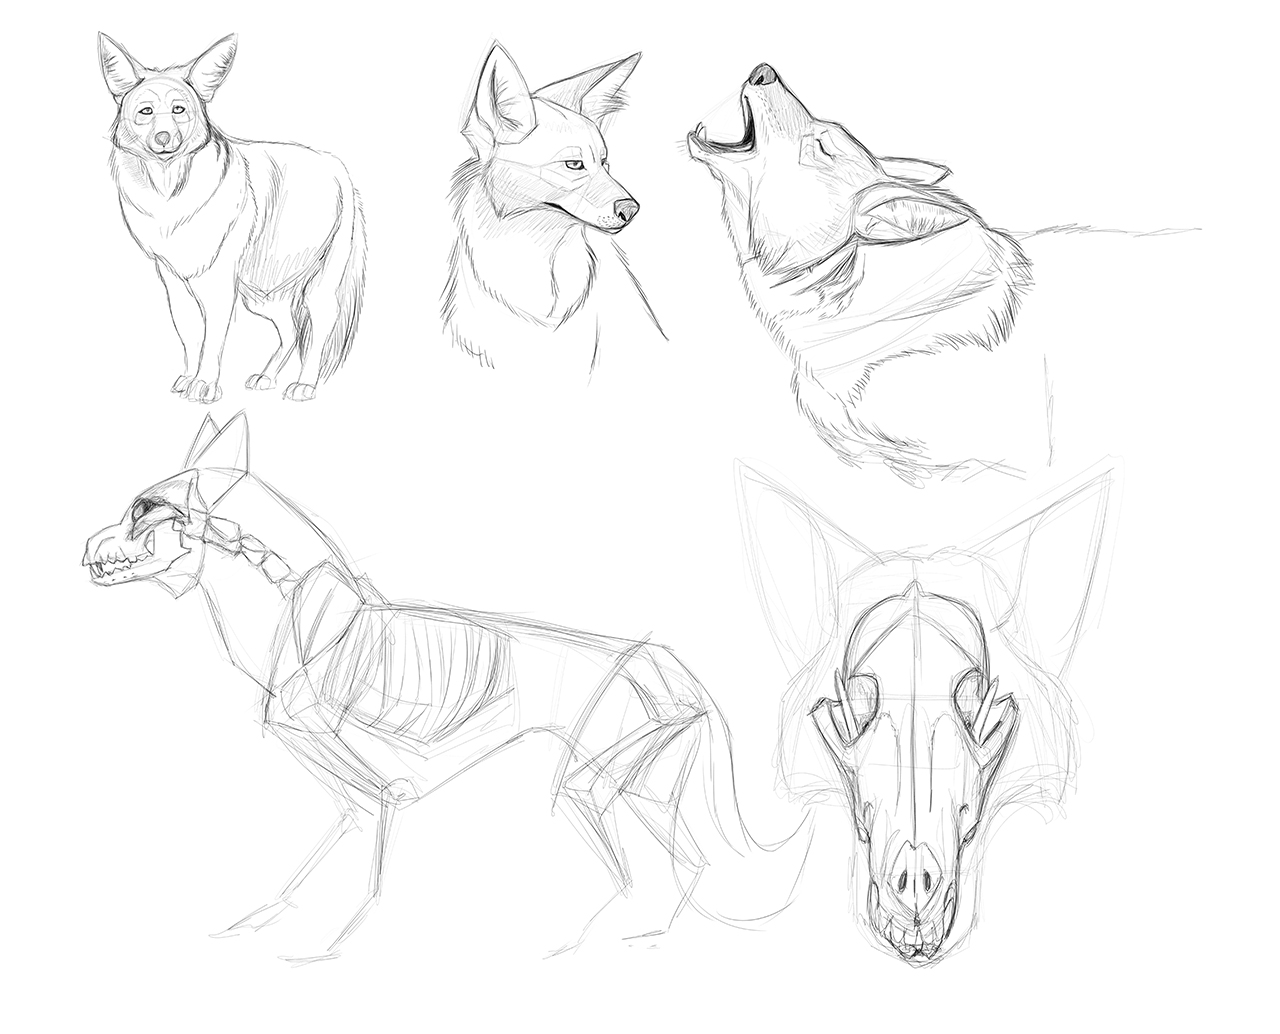 Coyote Reference Sketches - Character Design by secoh2000 on DeviantArt